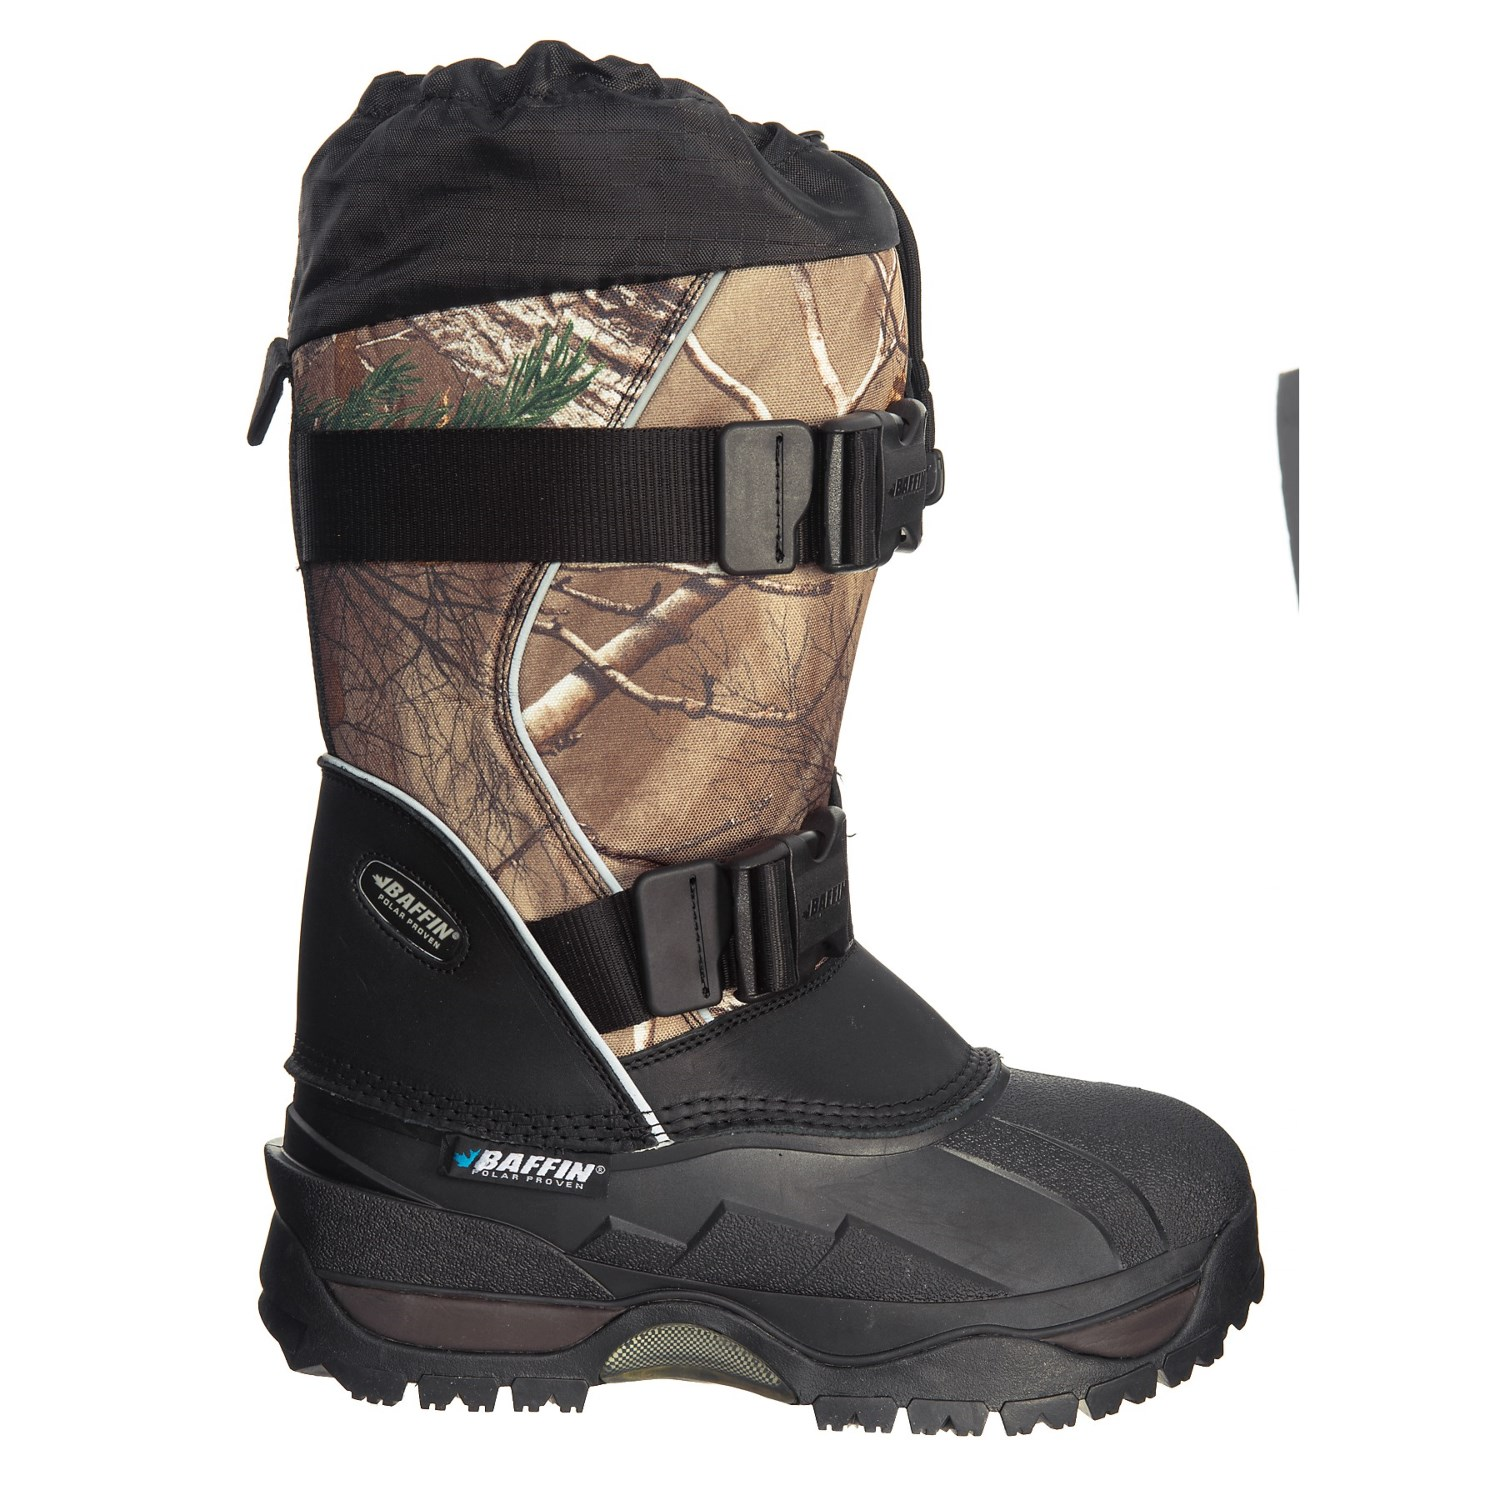 7c4df6fa438 Baffin Impact Winter Boots - Waterproof, Insulated (For Men)